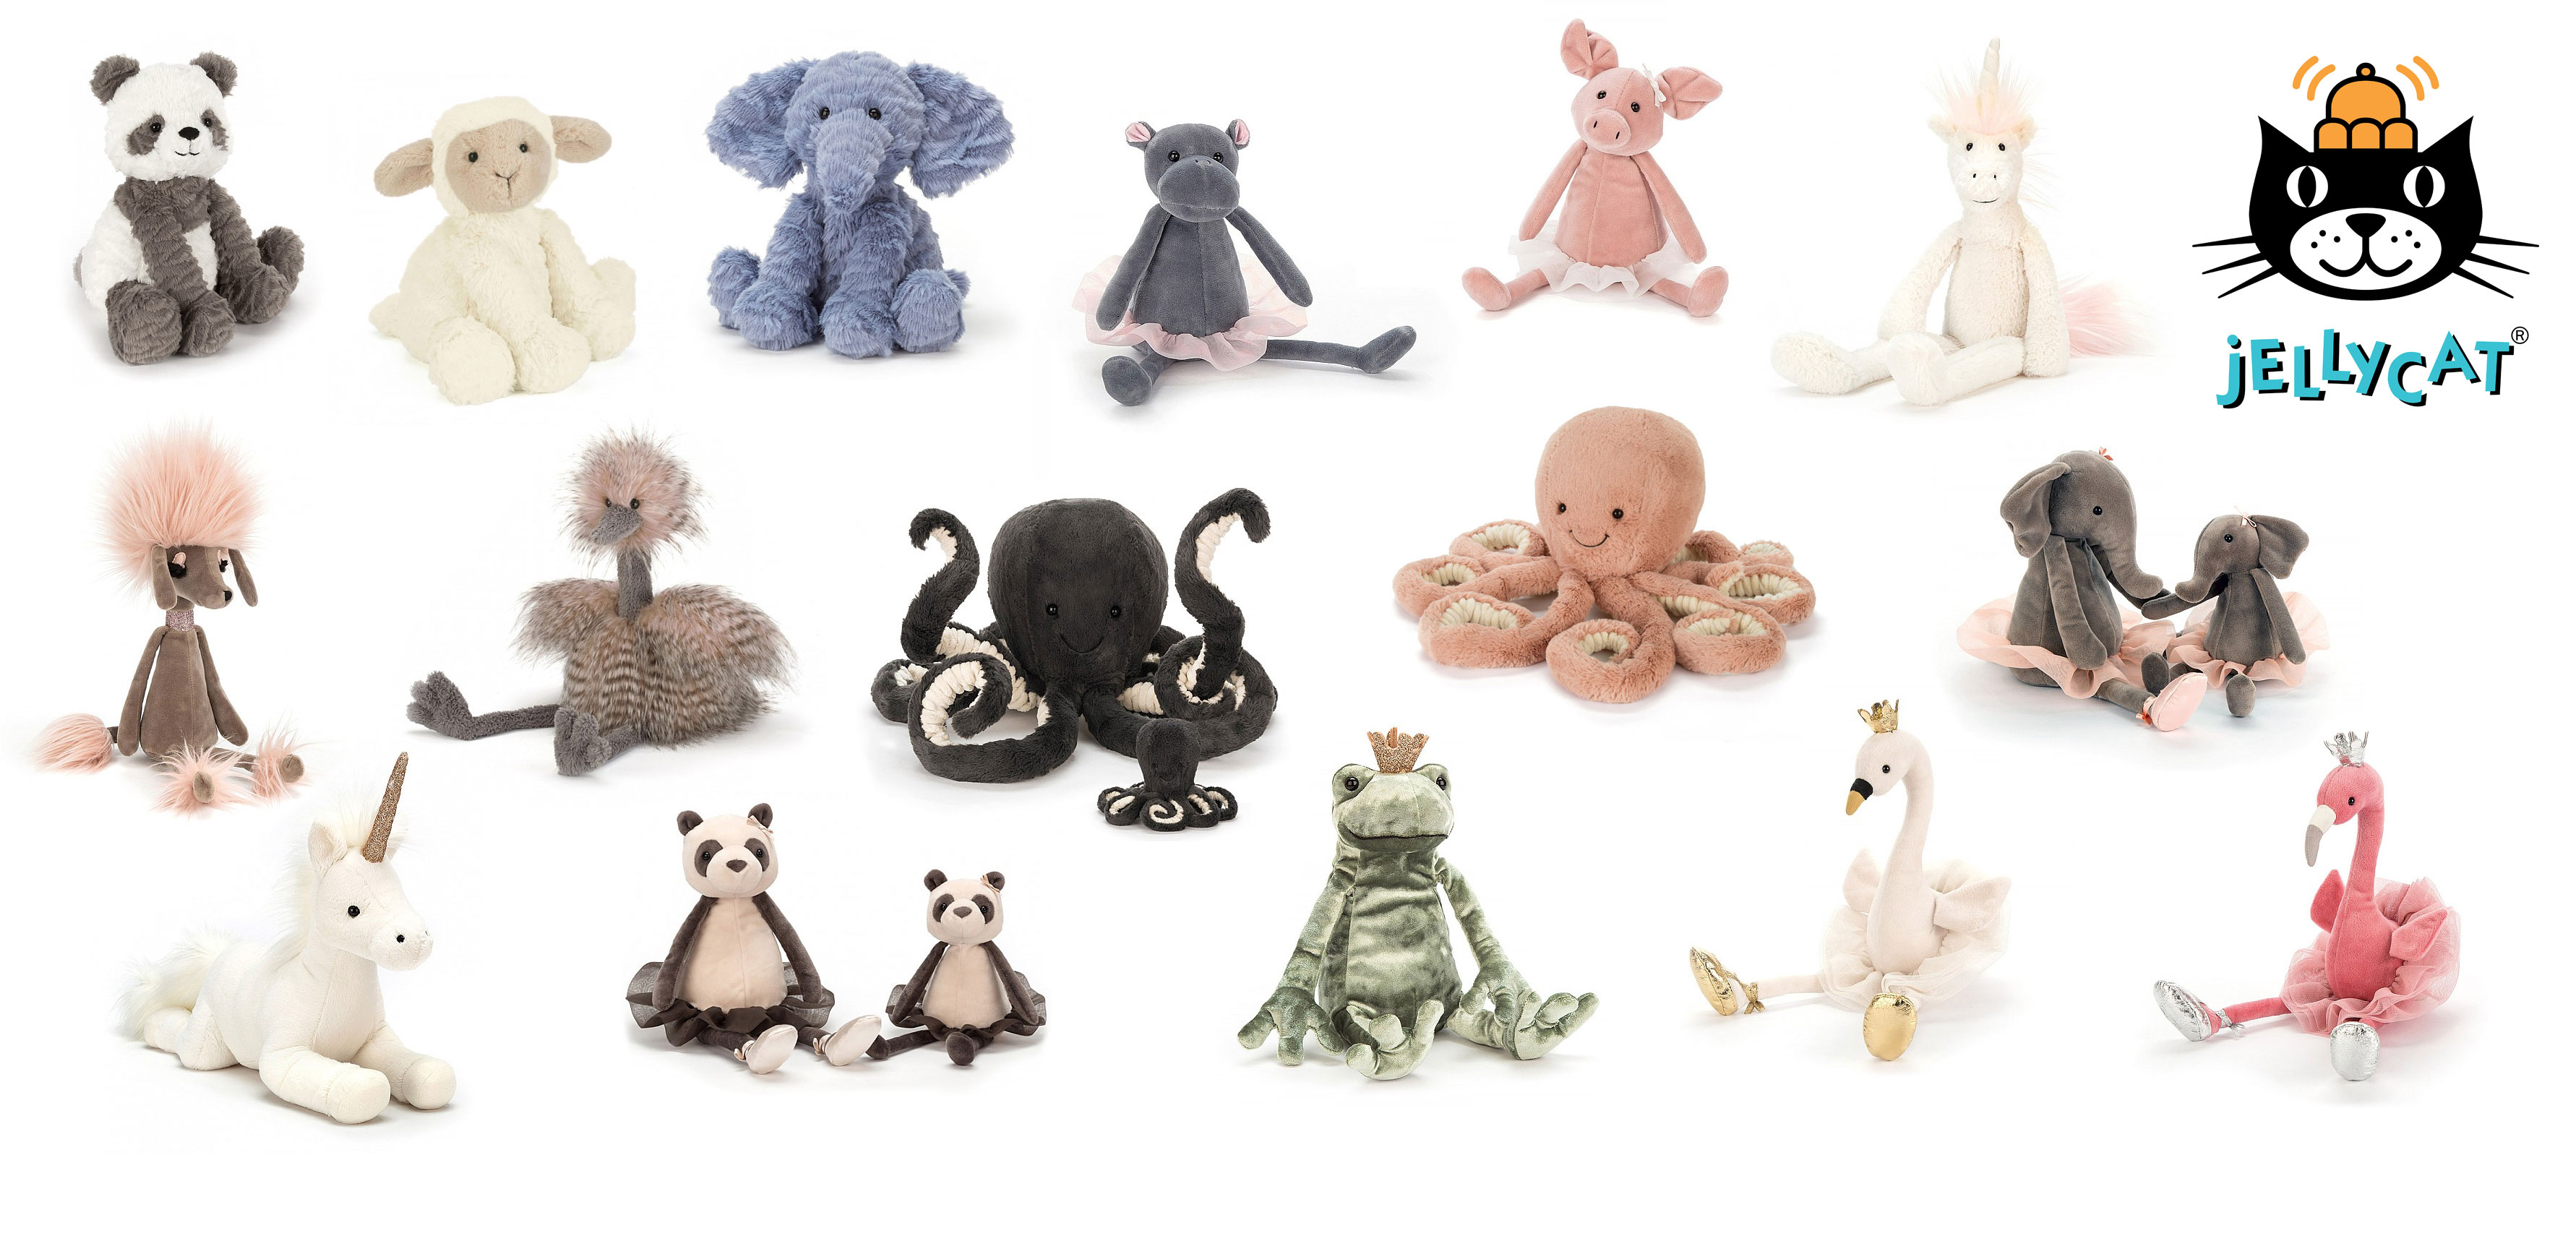 separation shoes 3fe4e 3abdb Jellycat Cute, fun and wonderfully soft, high quality soft toys.